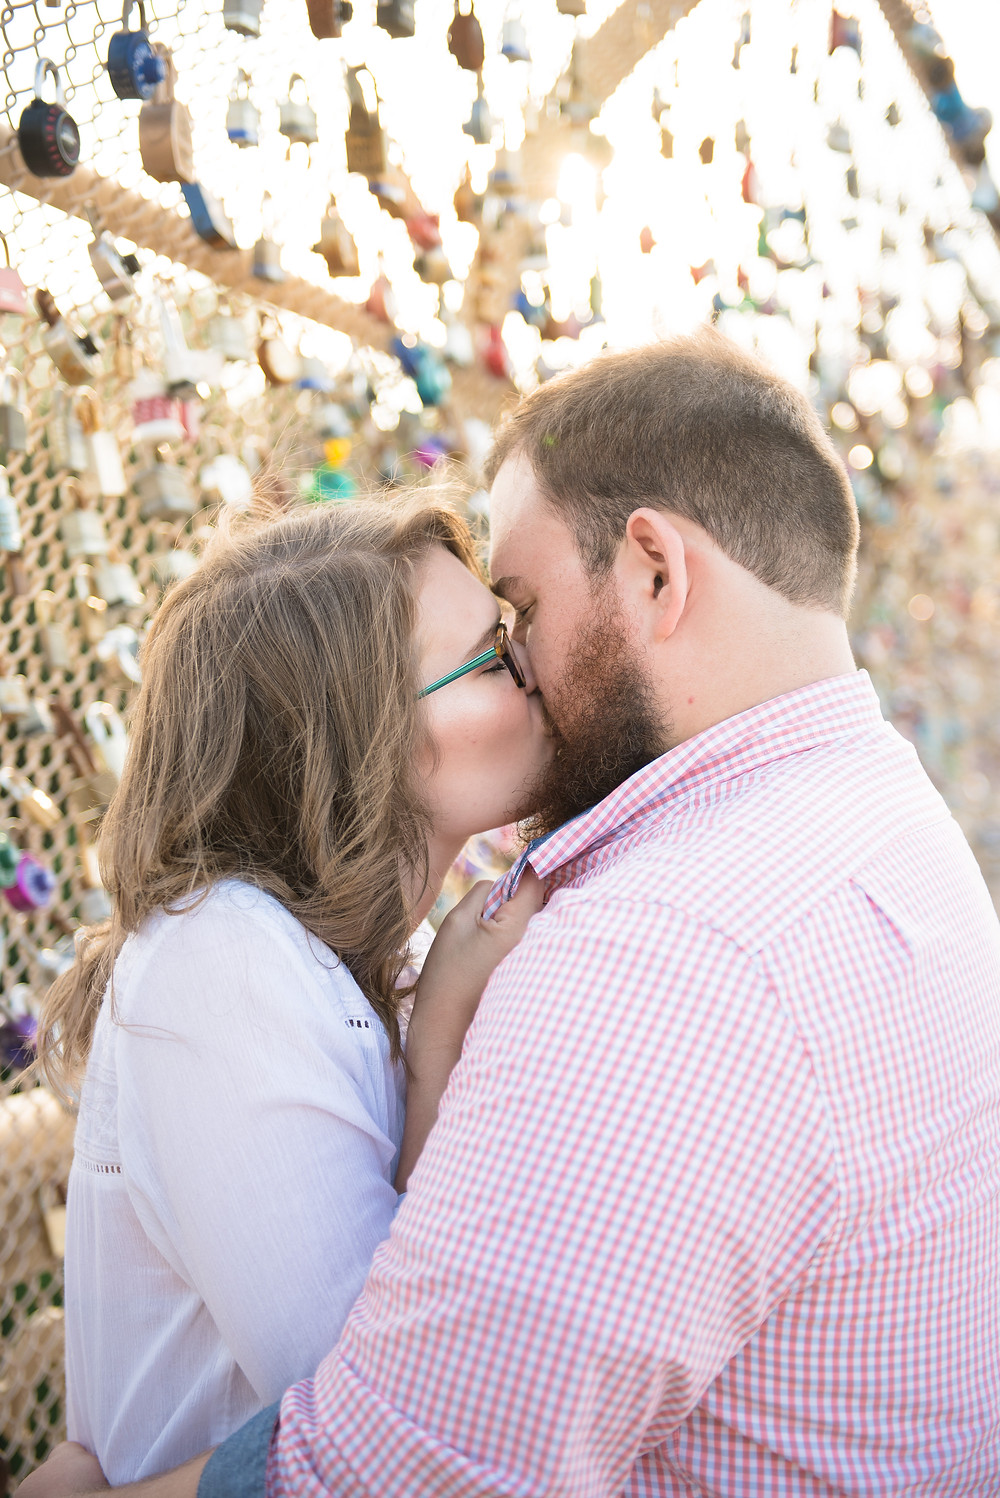 A couple kissing on a bridge with colorful locks and sunlight in the background